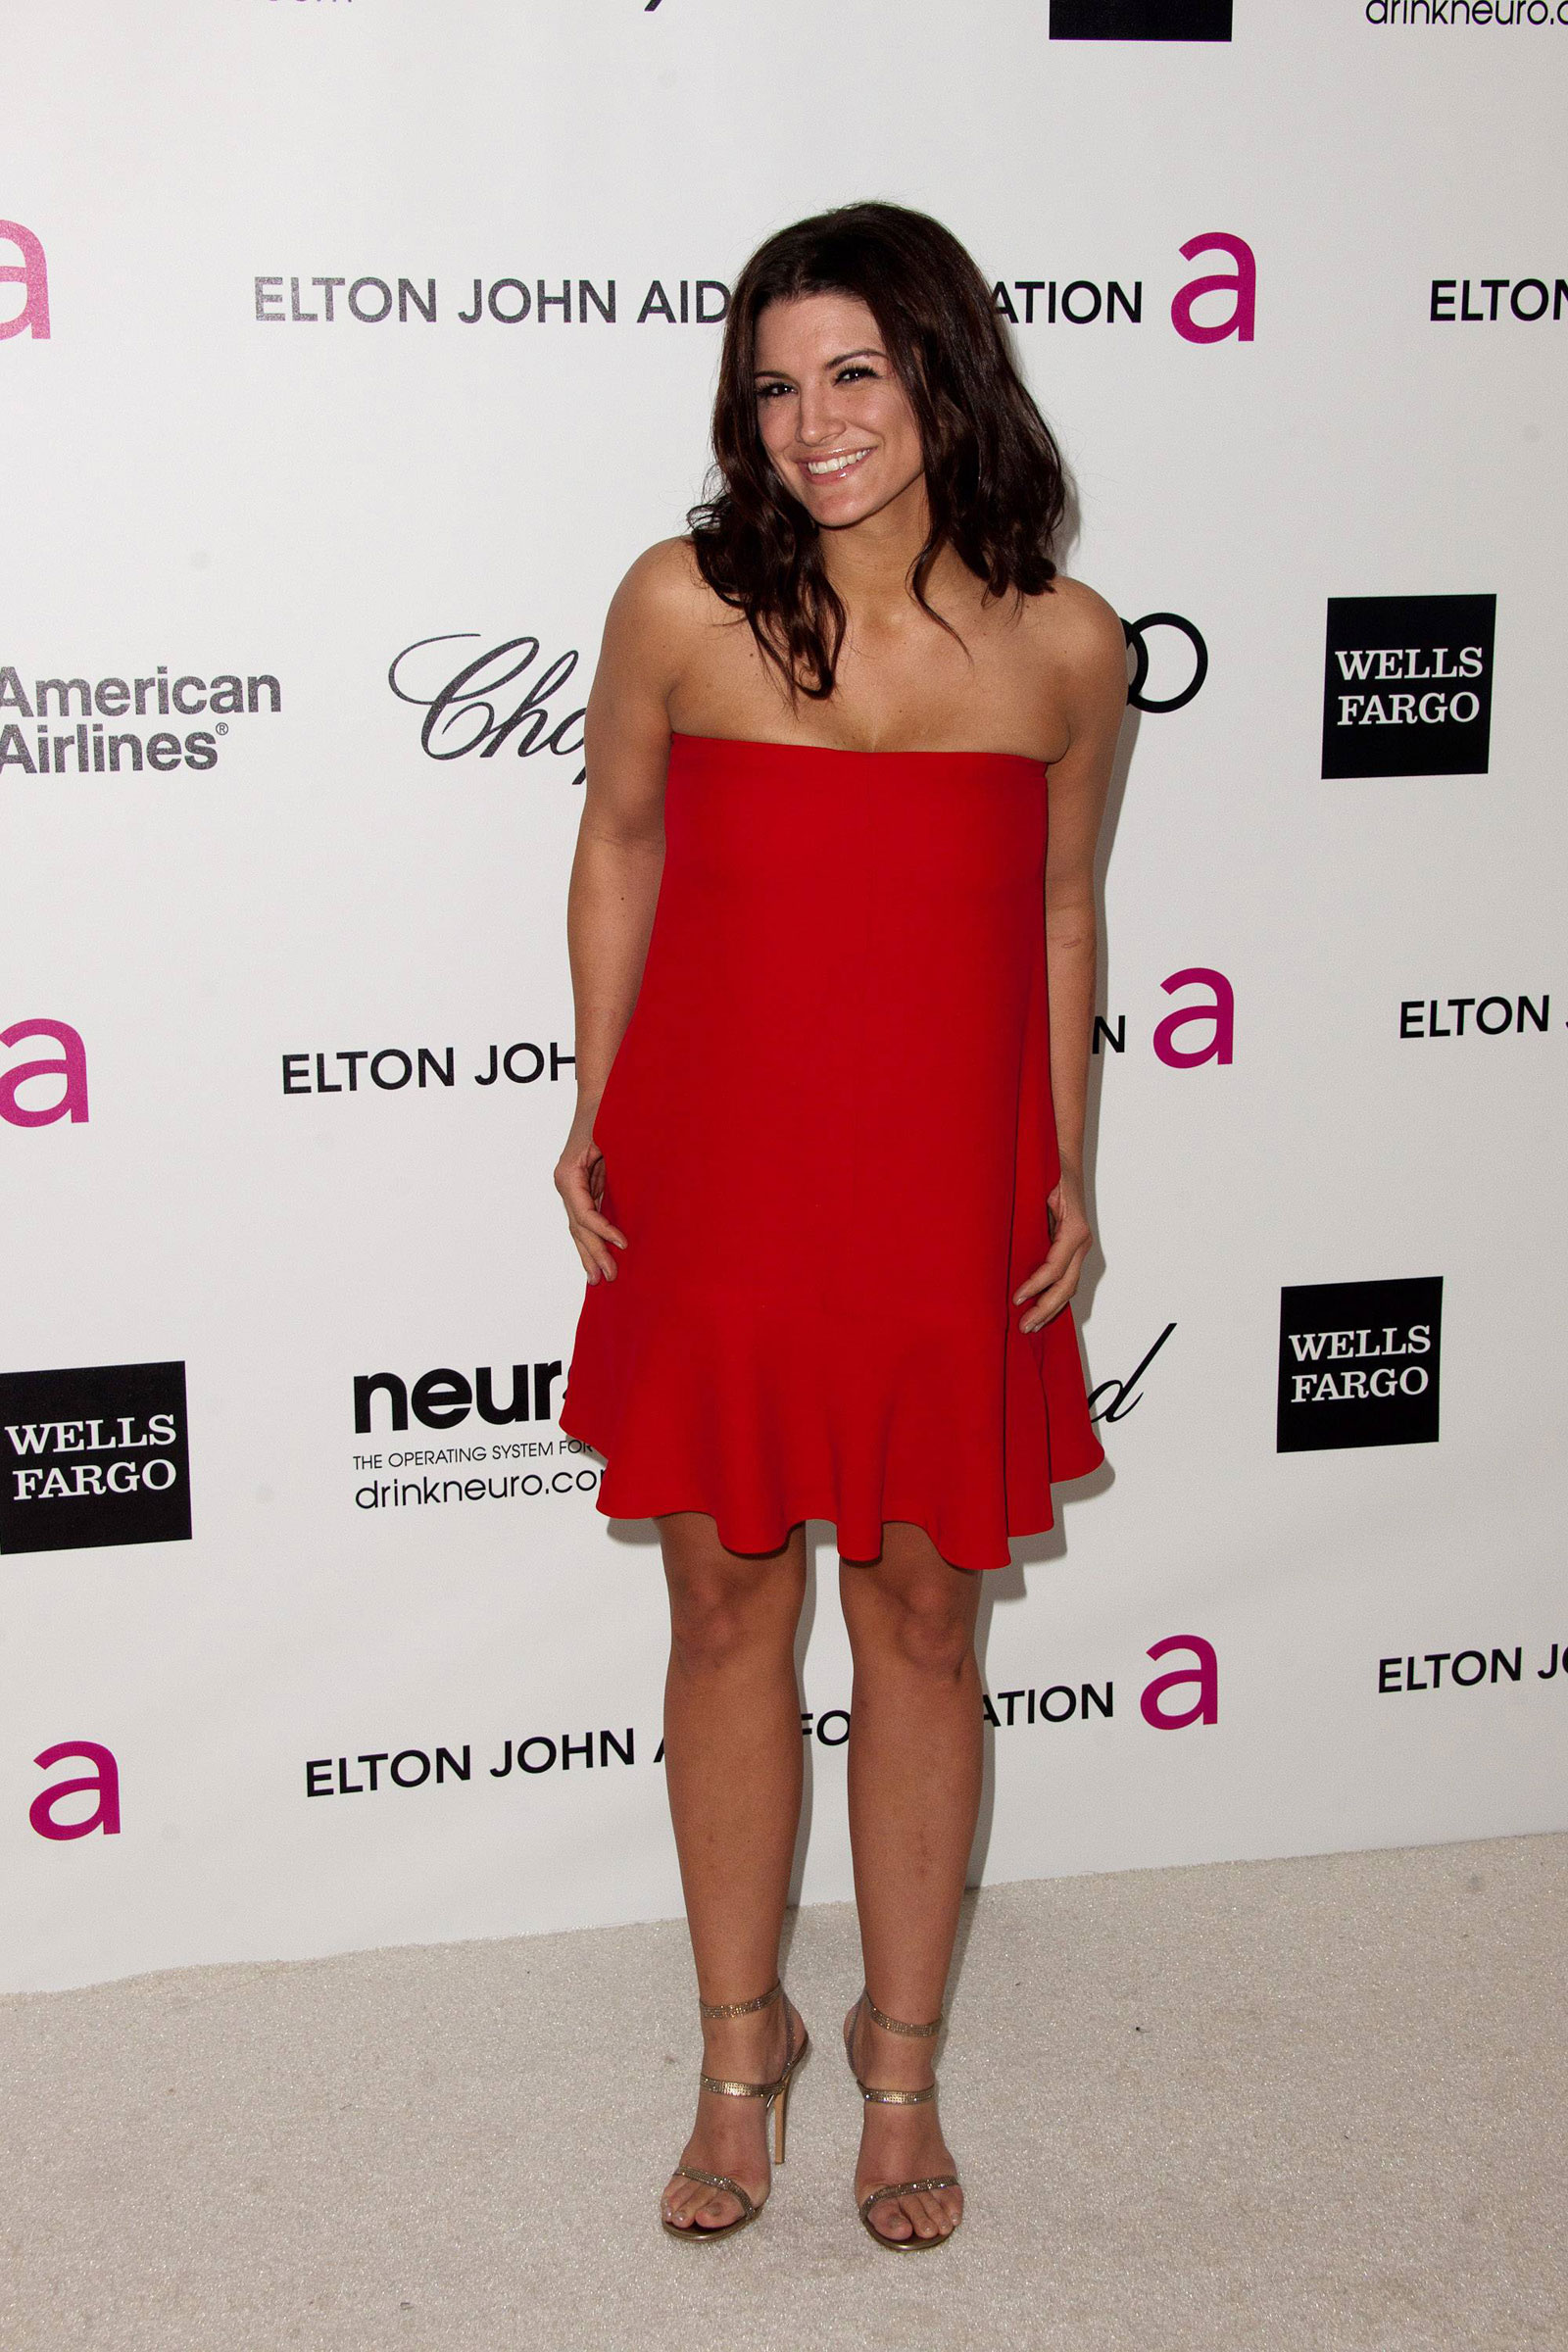 gina carano goodlooking good in red dress